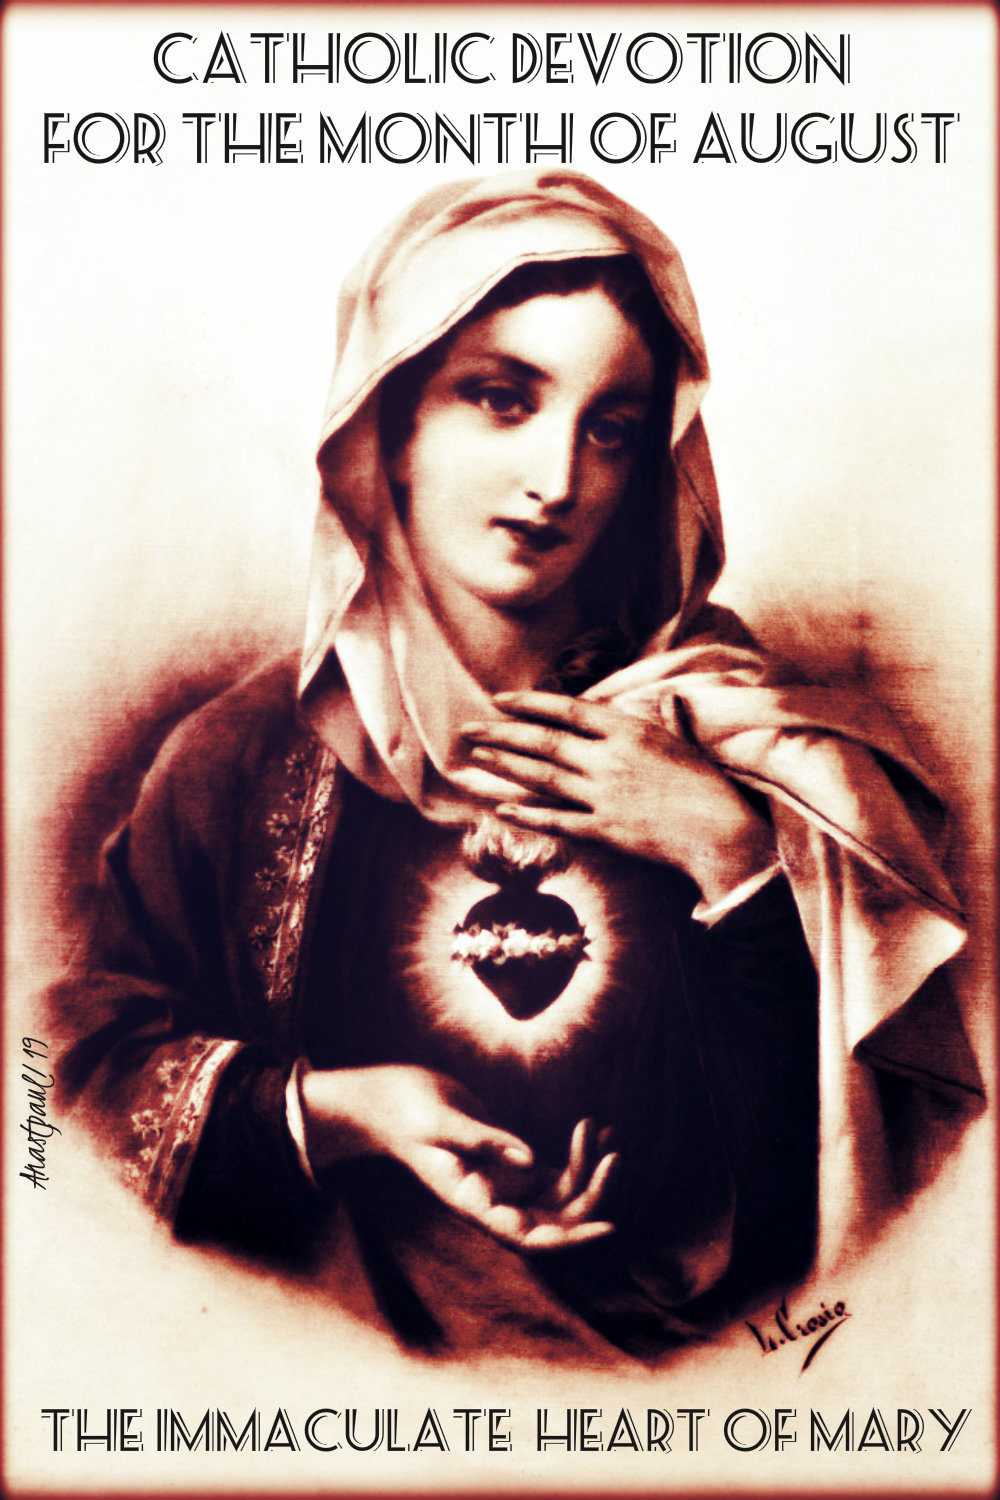 AUG DEVOTION THE IMMACULATE HEART 1 AUG 2019